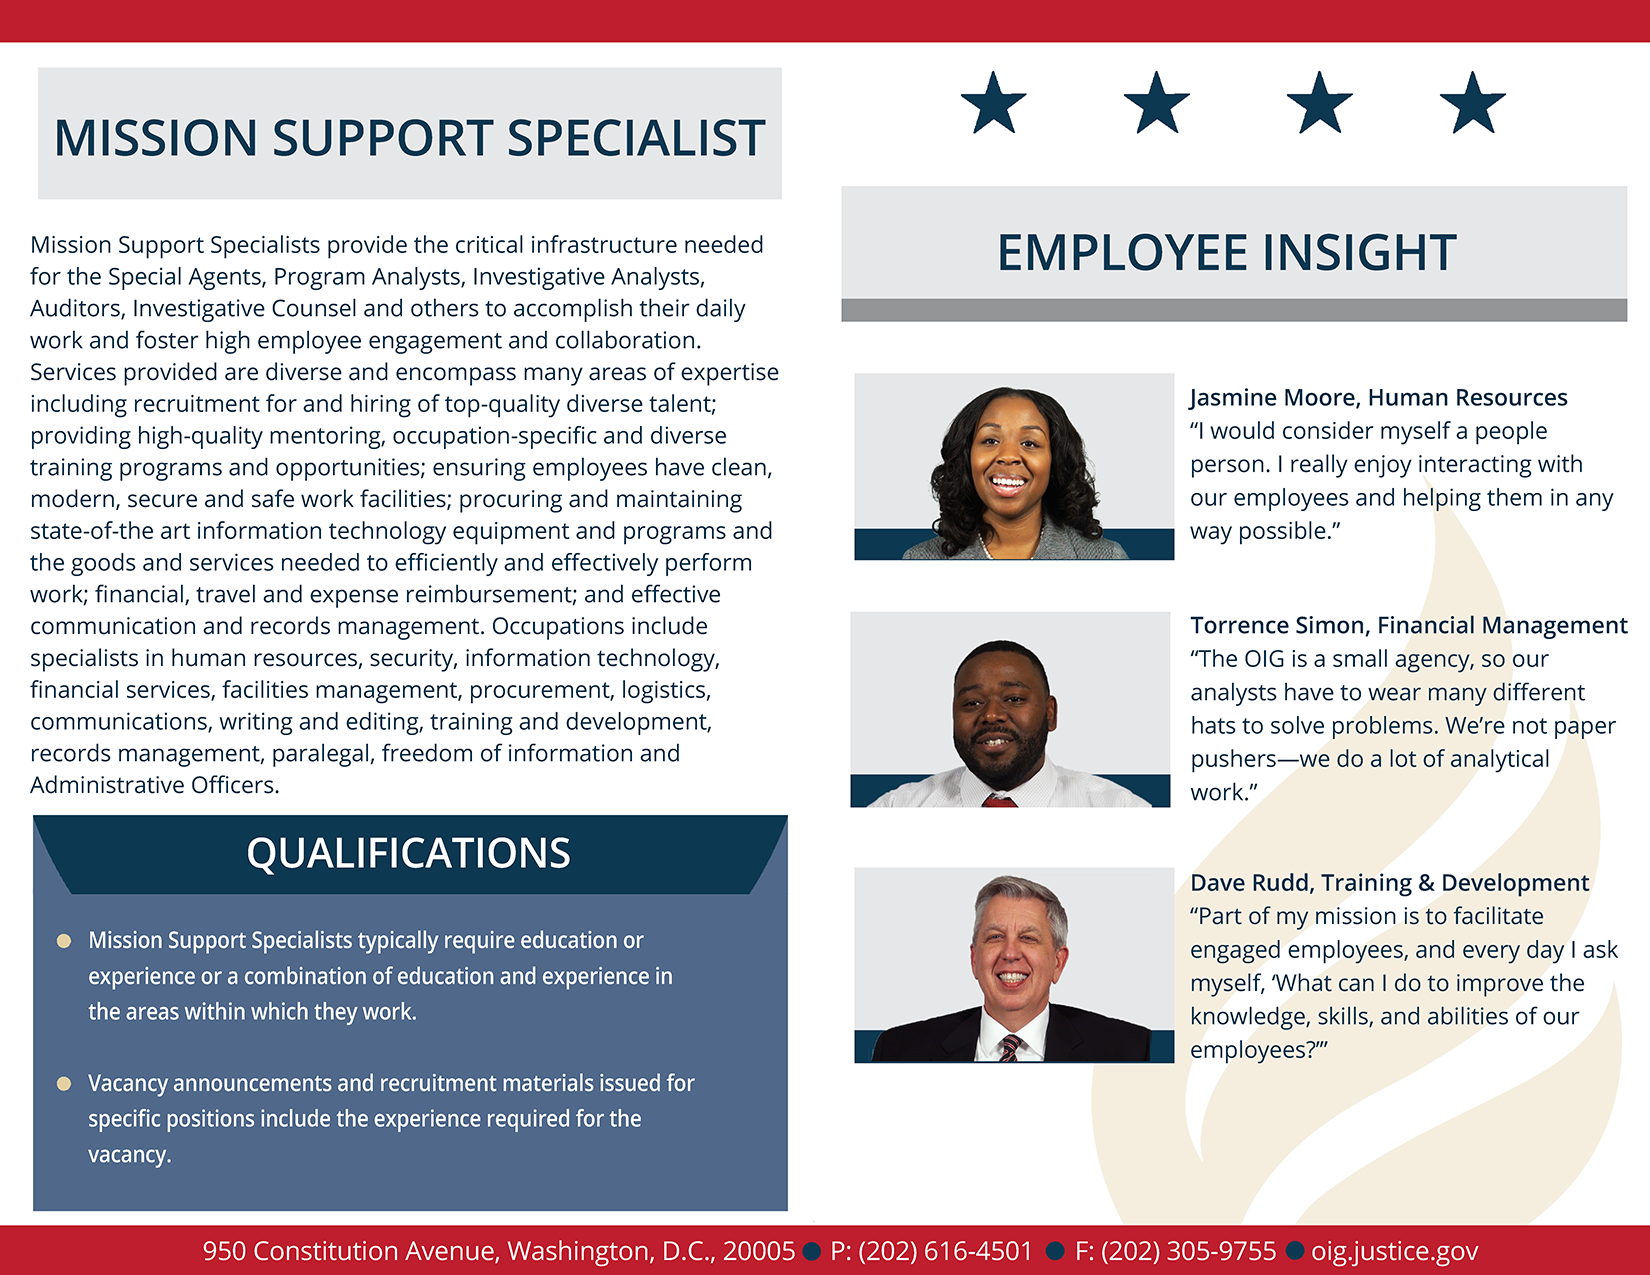 Read more about mission support employees experiences